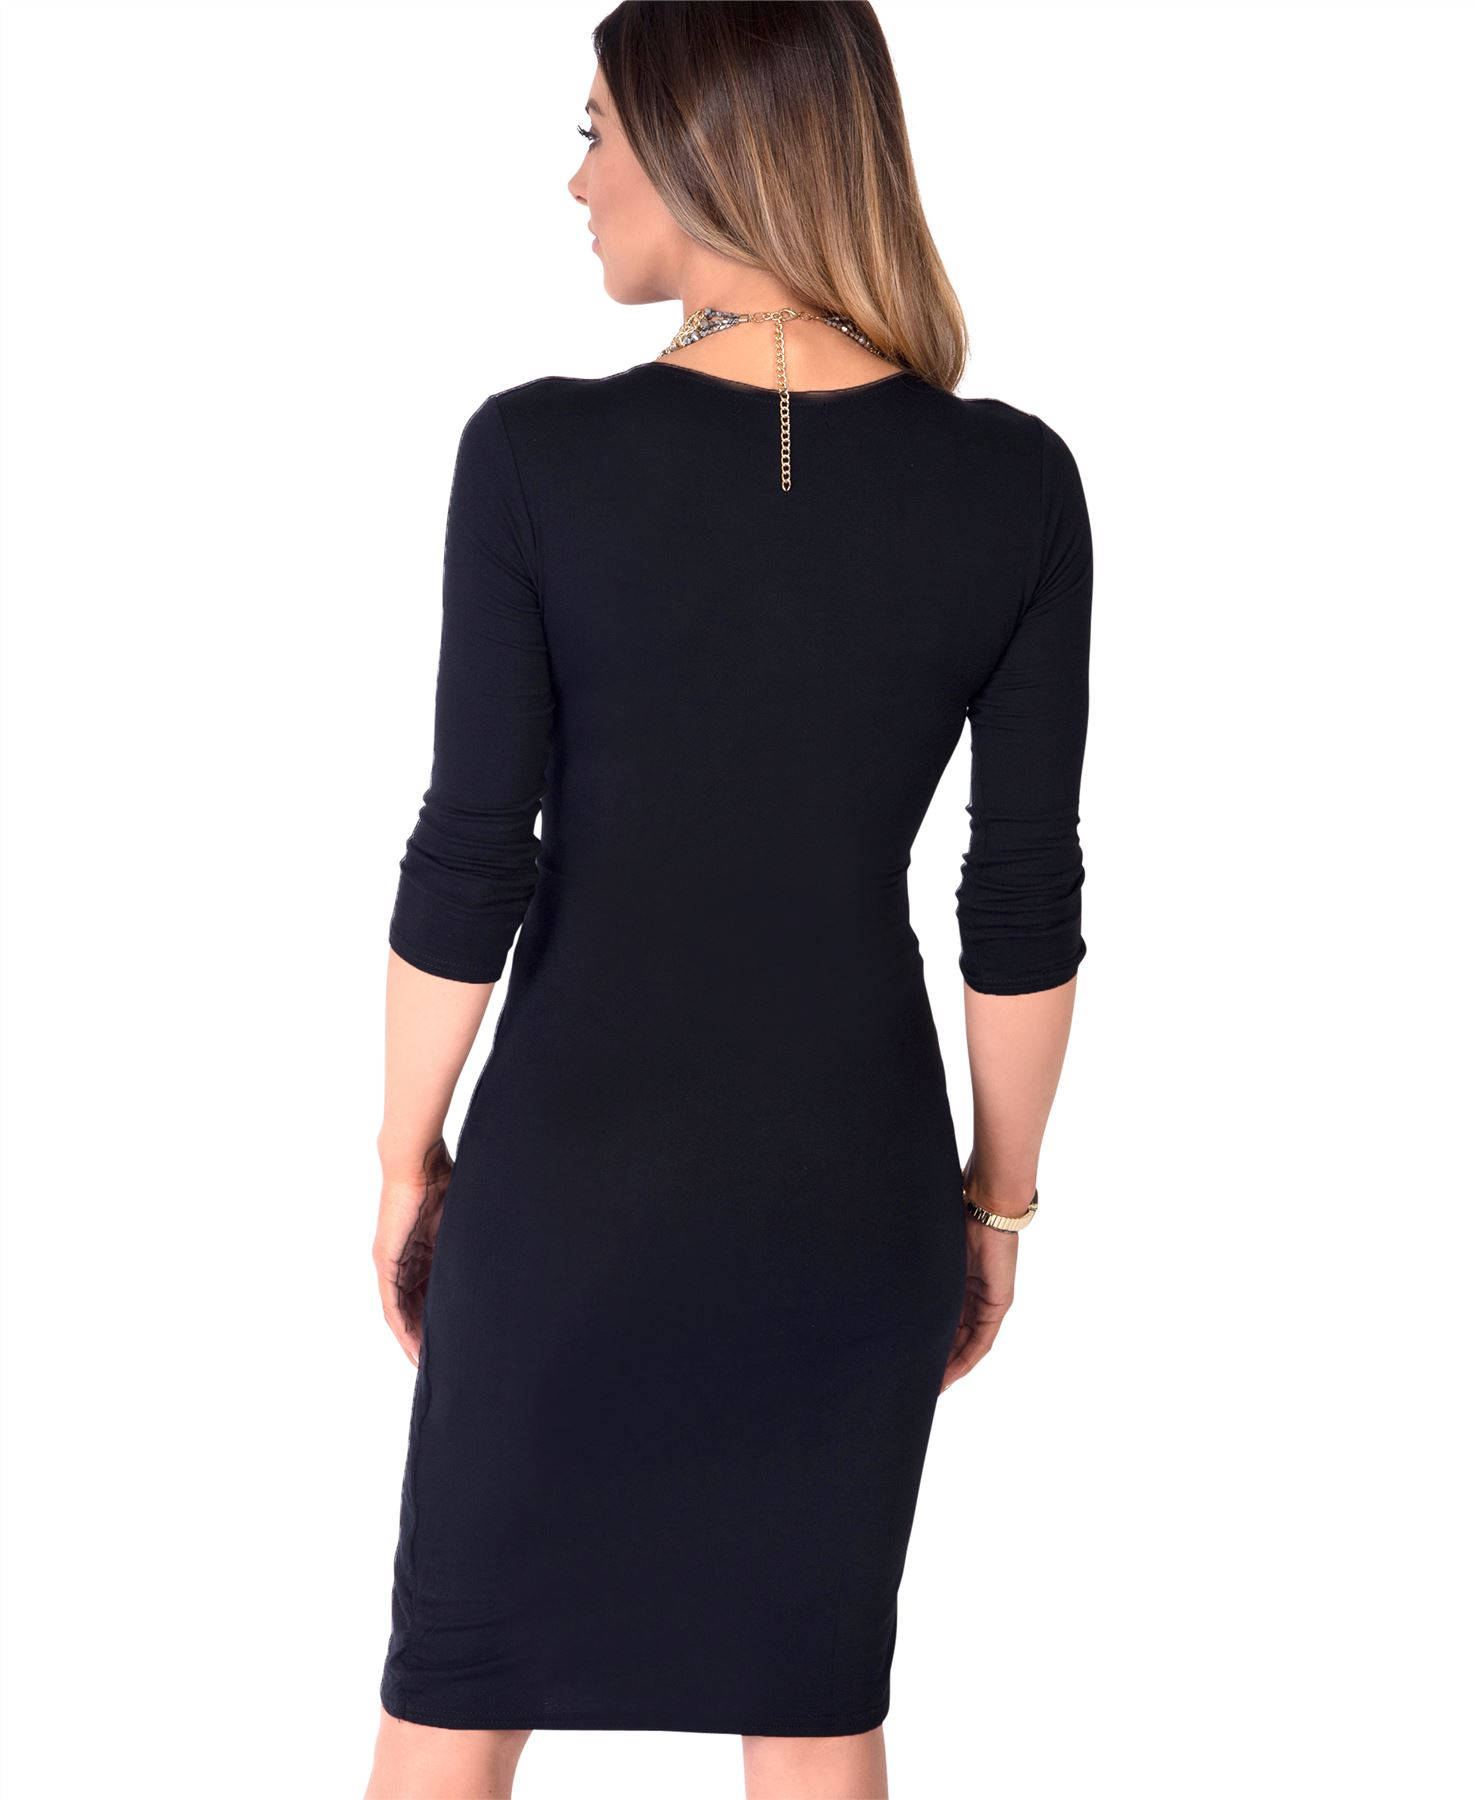 Womens-Ladies-Shift-Wrap-Dress-Midi-Knee-Long-Quarter-Sleeve-Sexy-Solid-Party thumbnail 4